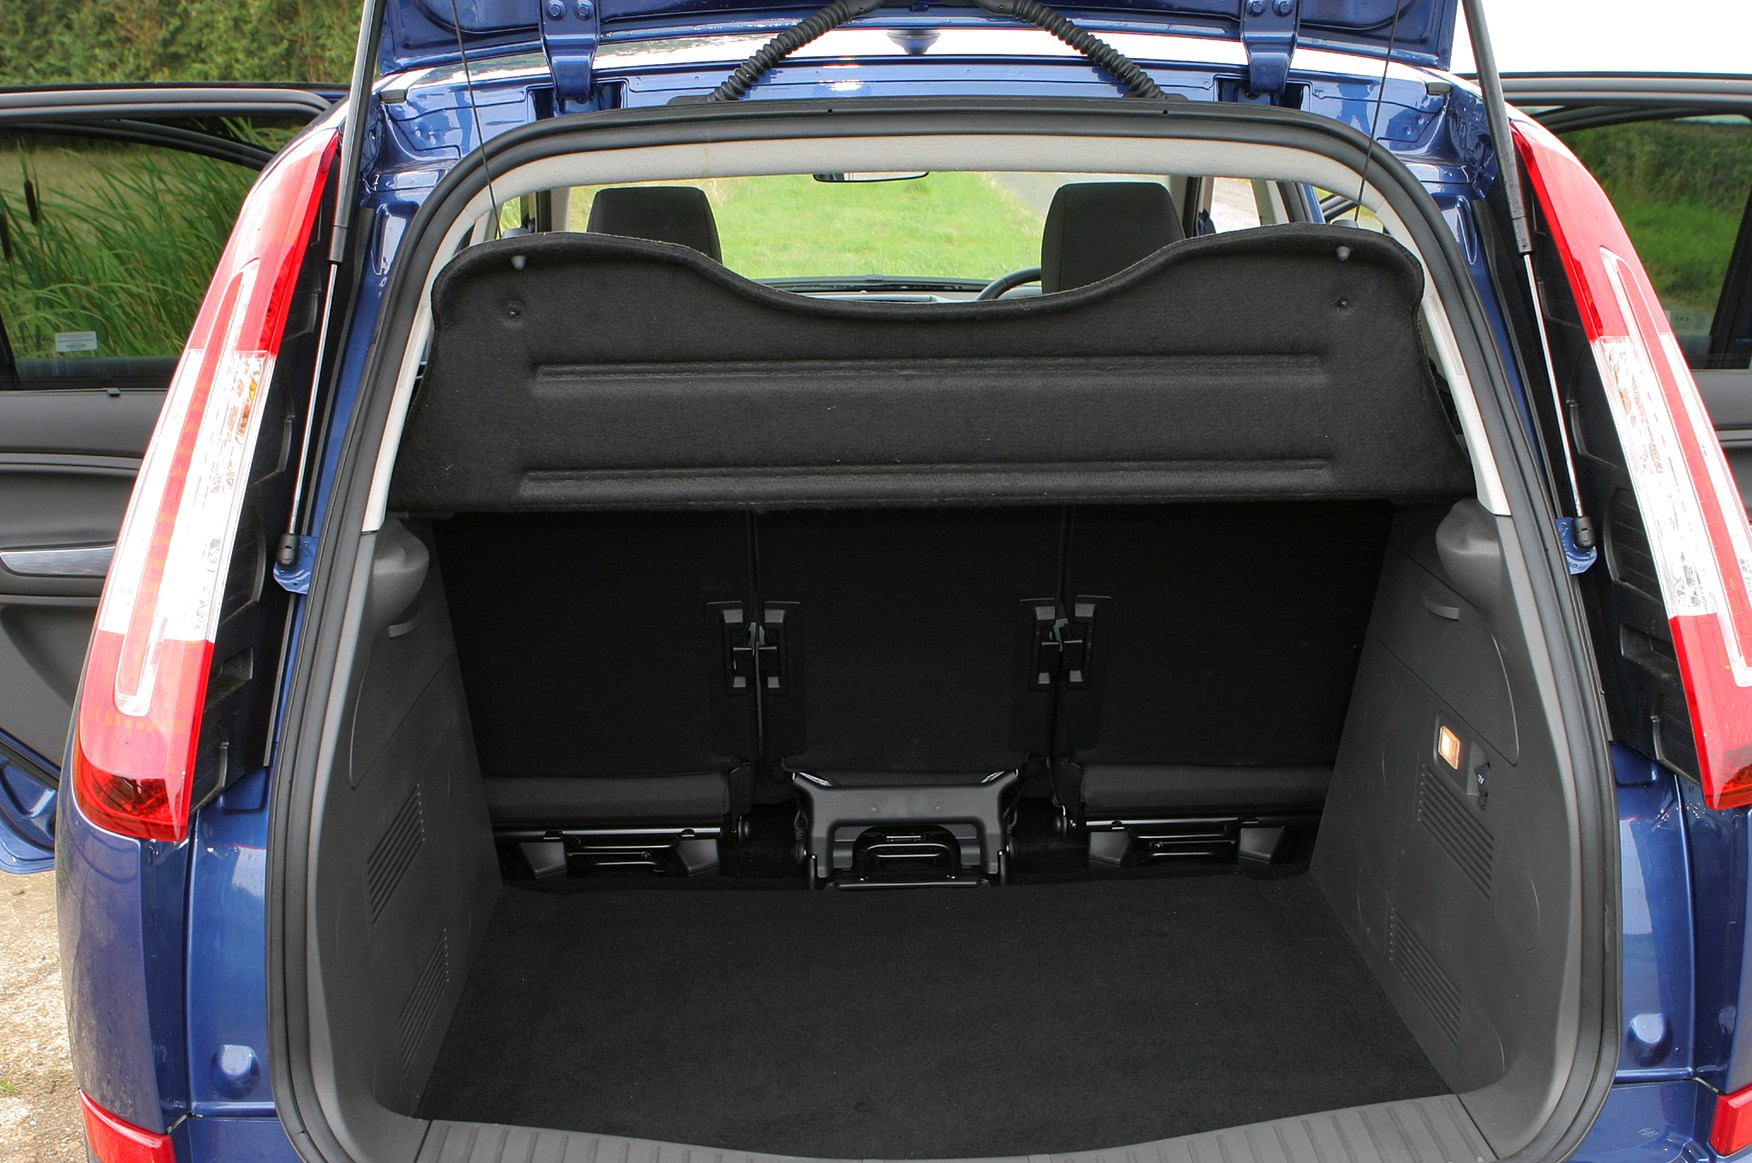 ford focus c max estate 2003 2010 features equipment and accessories parkers. Black Bedroom Furniture Sets. Home Design Ideas